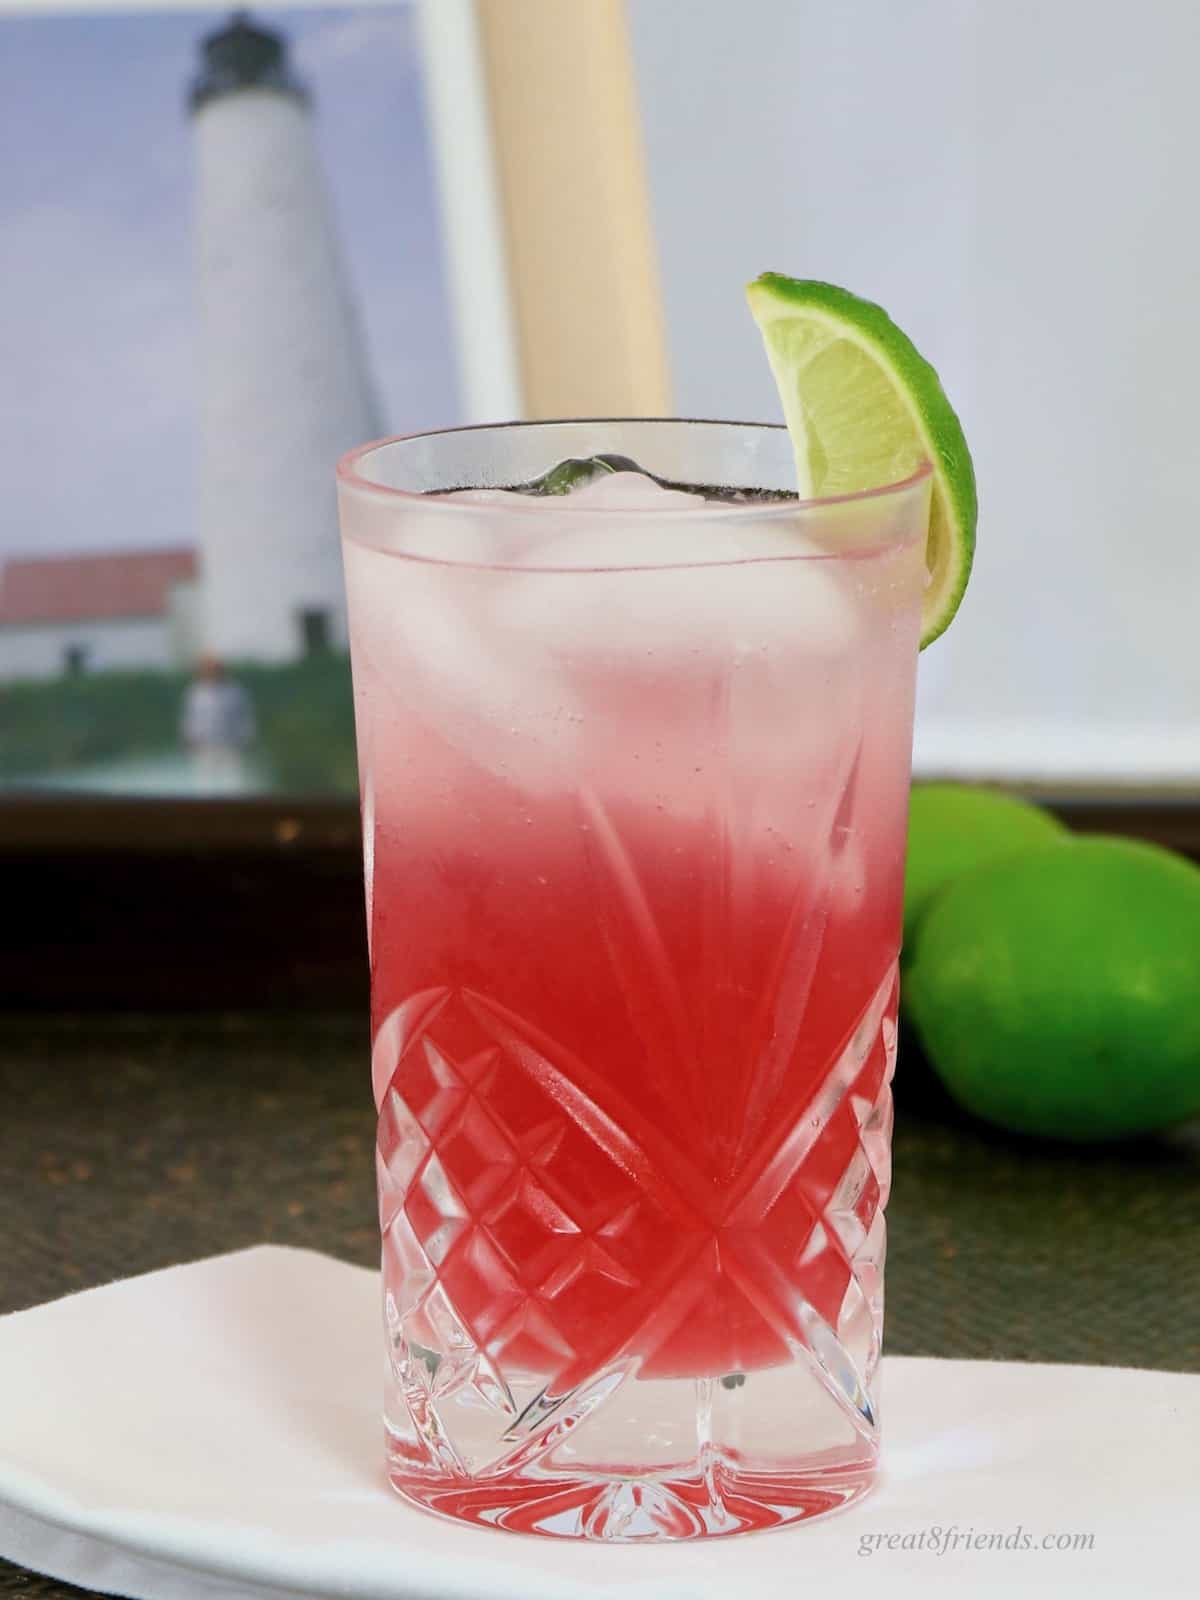 Photo of a red cocktail in a highball glass garniished with a wedge of lime.